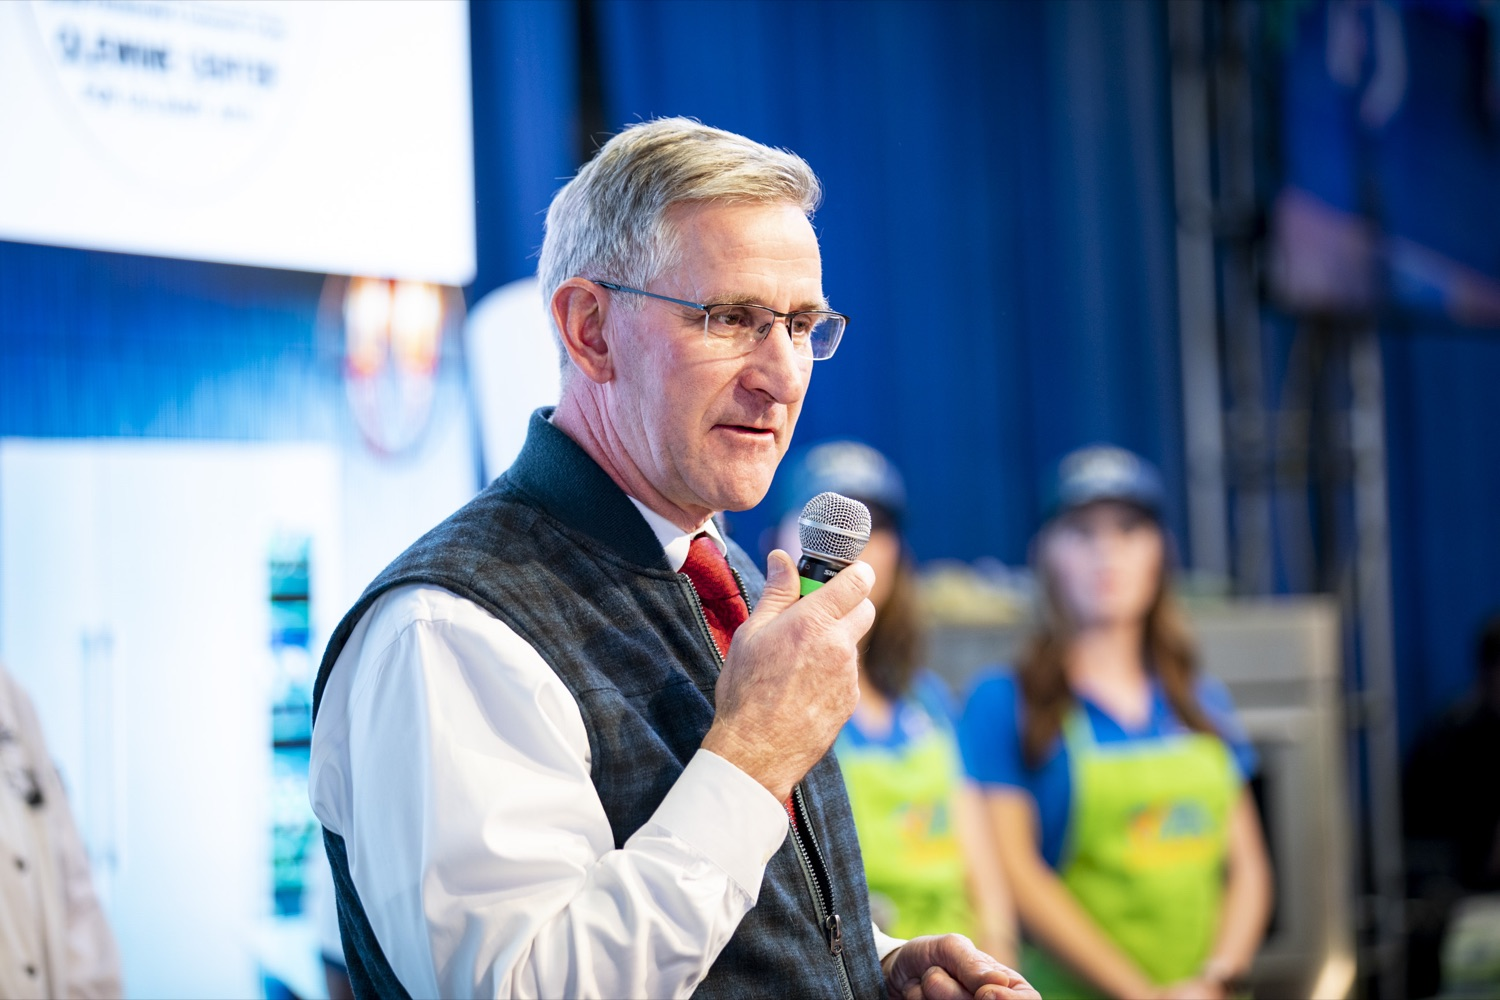 """<a href=""""http://filesource.abacast.com/commonwealthofpa/photo/17651_AGRIC_ARMY_NAVY_COOKOFF_CZ_21.jpg"""" target=""""_blank"""">⇣Download Photo<br></a>Secretary Russell Redding highlights the importance of Military Appreciation Day at the 2020 Army vs. Navy Cook-Off in Harrisburg on January 9, 2020."""